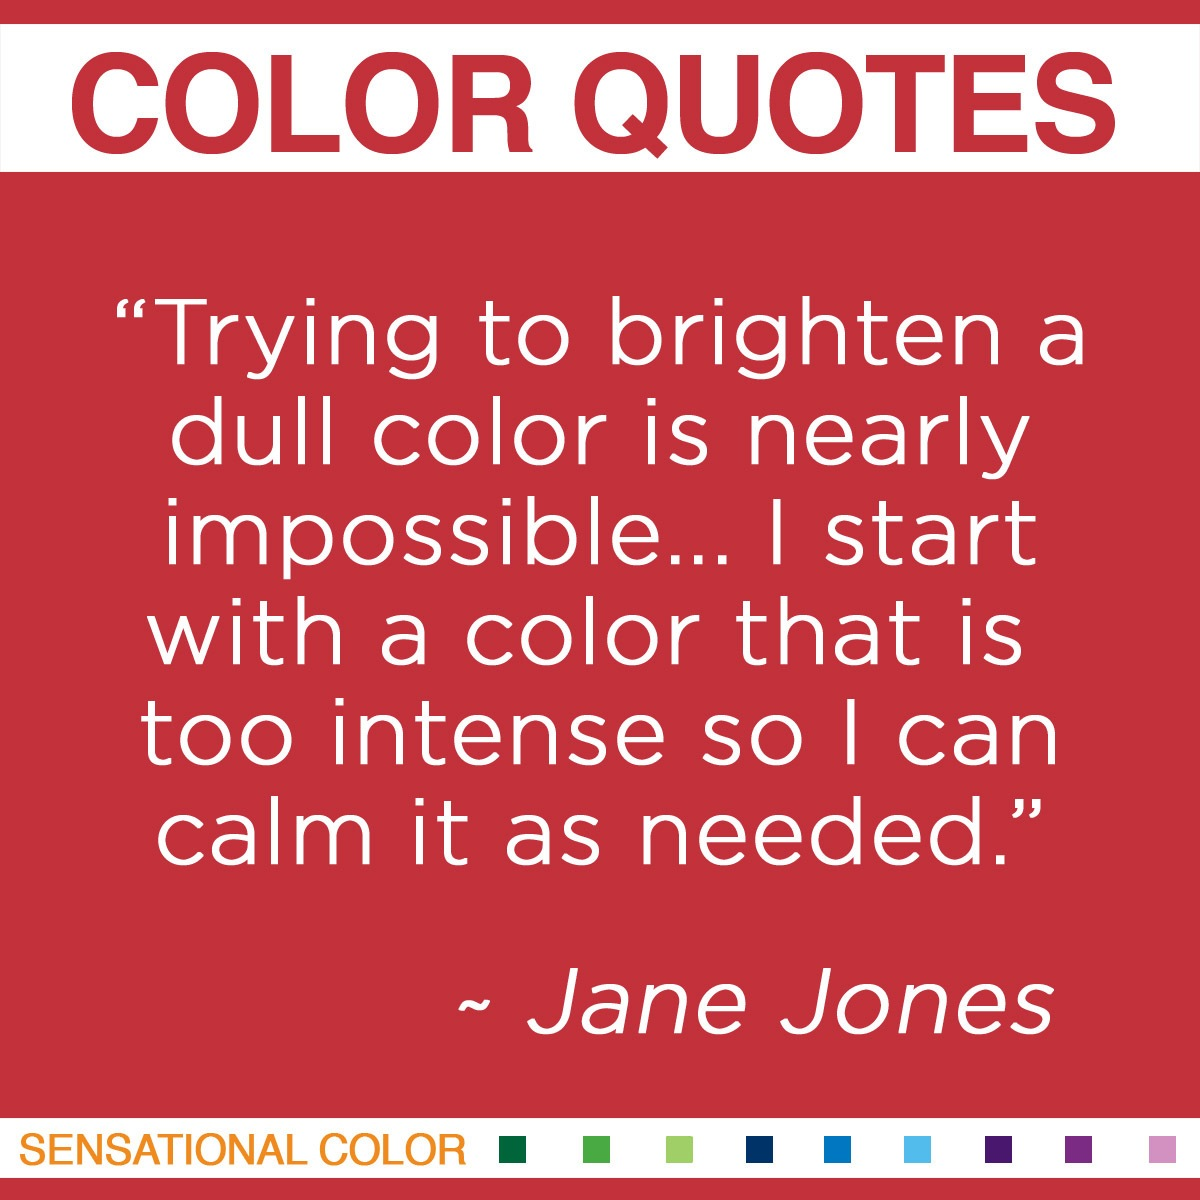 Jones Quote About Color